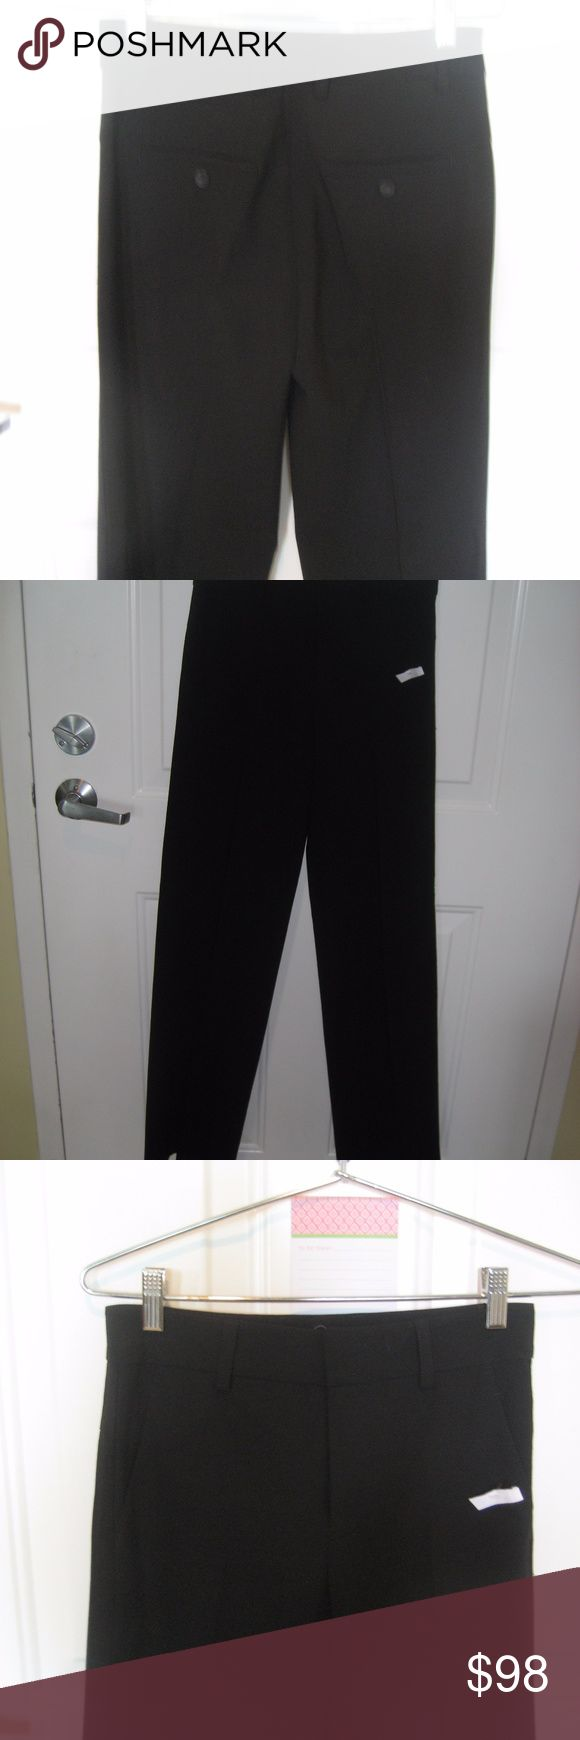 """Vince Tuxedo Like Flat Front Trouser Pants Vince Tuxedo Stripe Pants Waist 28"""" Hip 36"""" (Approximate) Thigh 20"""" Inseam 33"""" 56% Viscose 43% WOOL 1% Spandex It is difficult to get the detail in pics but there is a tuxedo like stripe down either side. GORGEOUS!! NEVER WORN Vince Pants Trousers"""